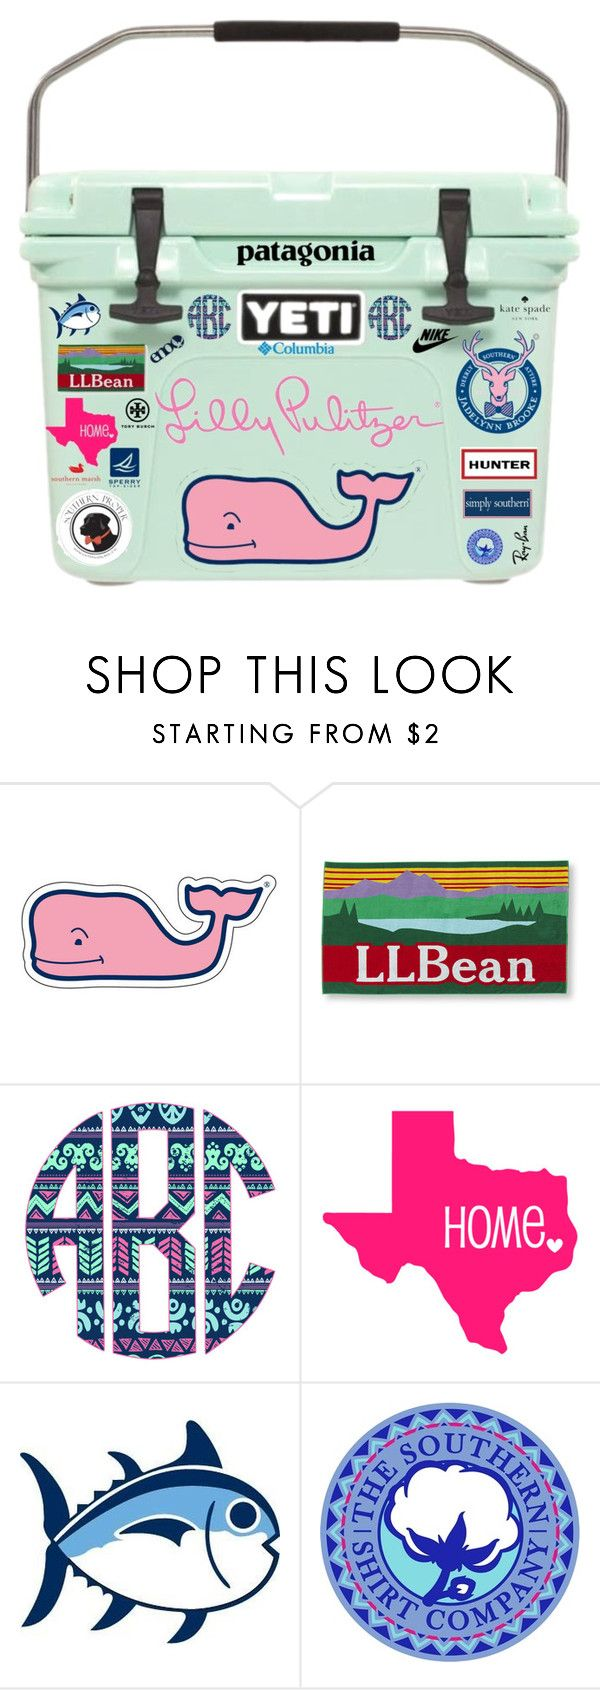 """""""Yeti Cooler!!!"""" by evieleet ❤ liked on Polyvore featuring Vineyard Vines, L.L.Bean, Southern Proper, Southern Tide, Patagonia, Hunter, Kate Spade, Sperry Top-Sider, Ray-Ban and Columbia Sportswear"""